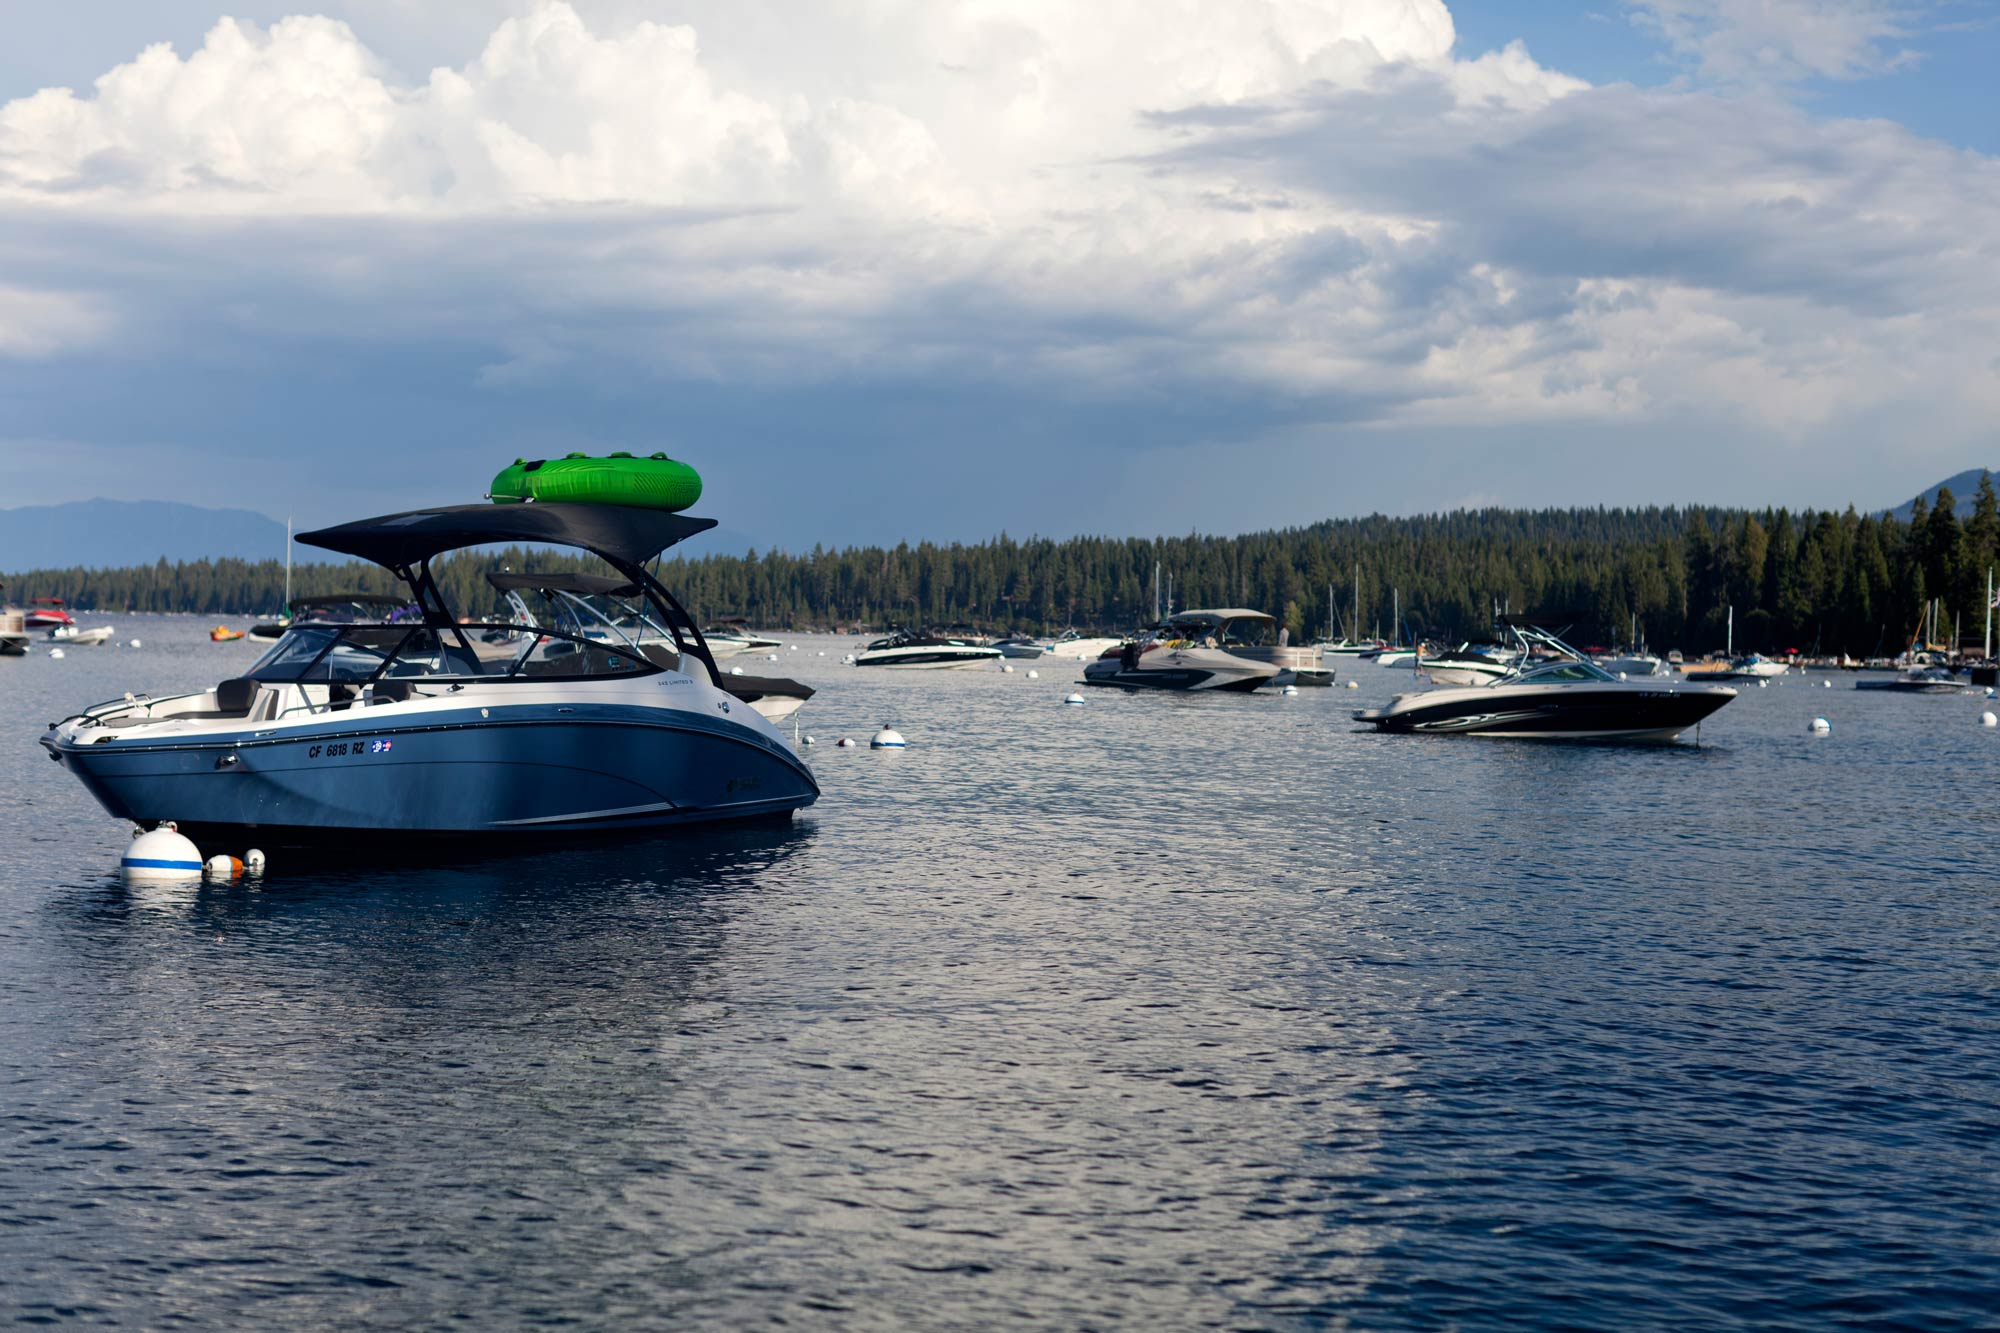 Charter boats scattered in a marina on Lake Tahoe